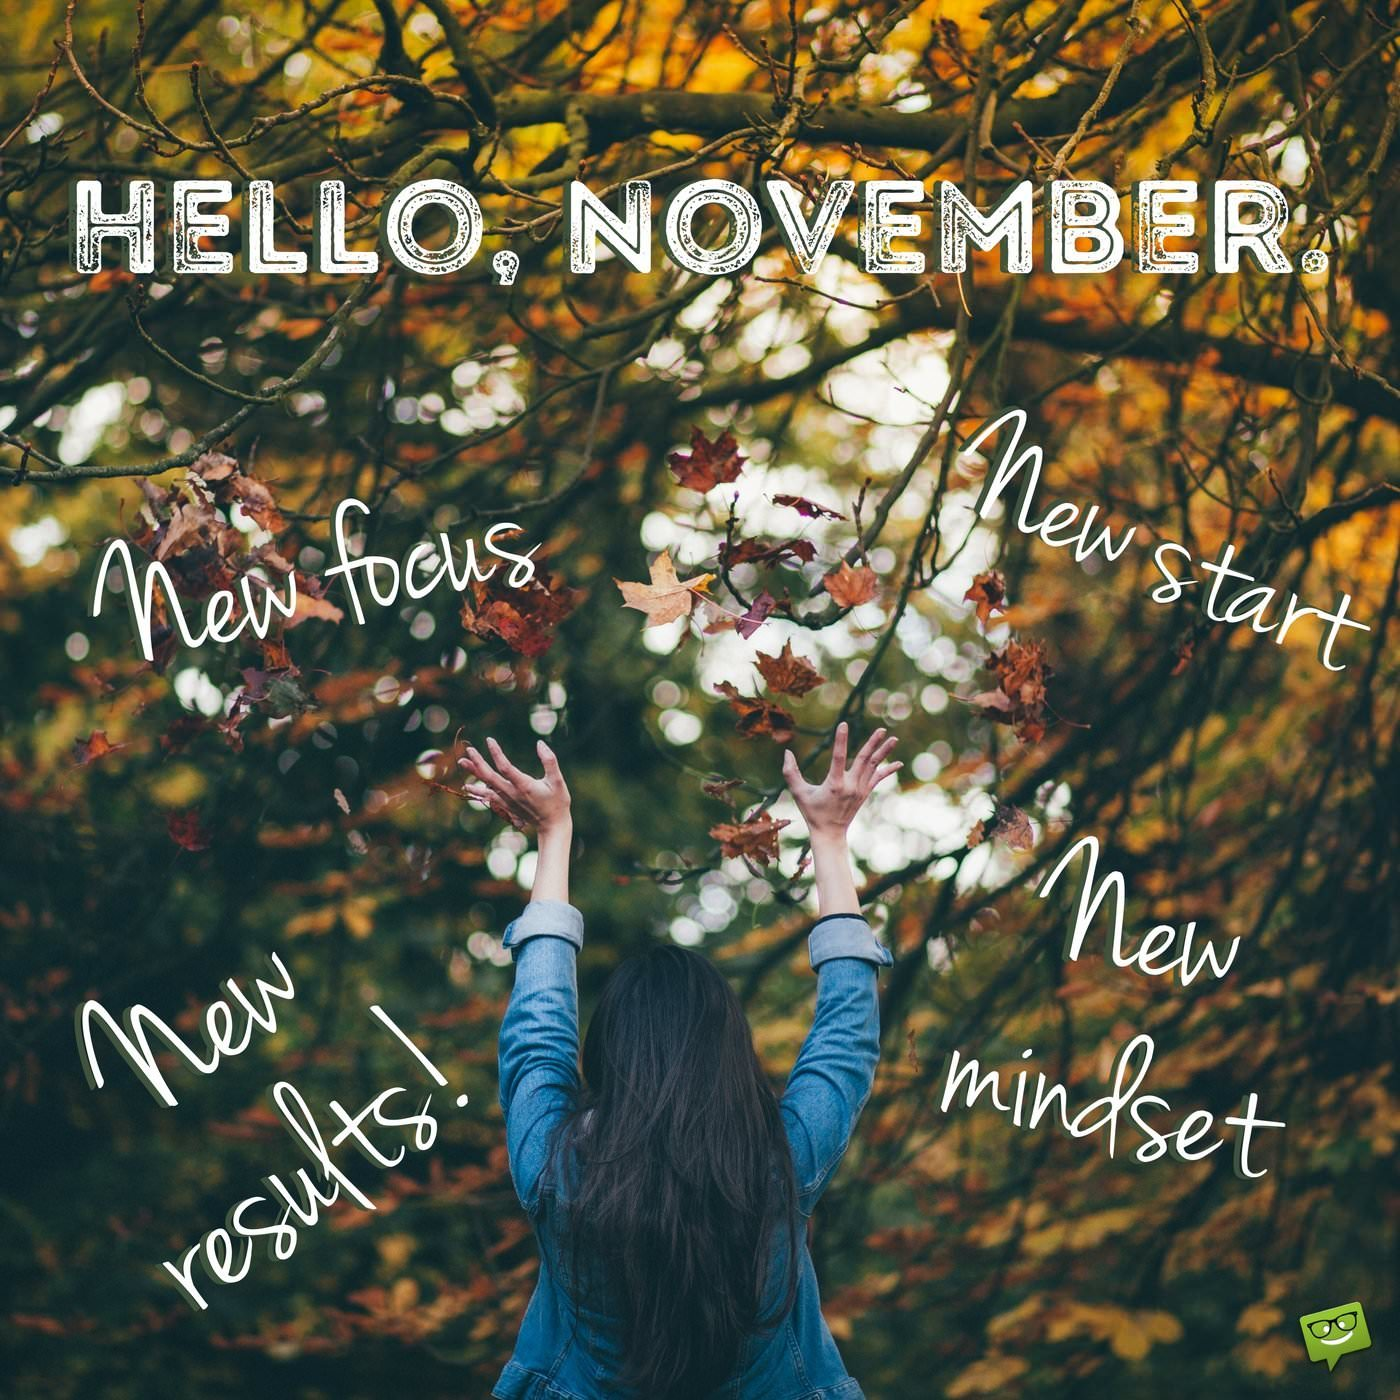 Hello November Motivational Quote On Image With Woman In Autumn Nature Landscape